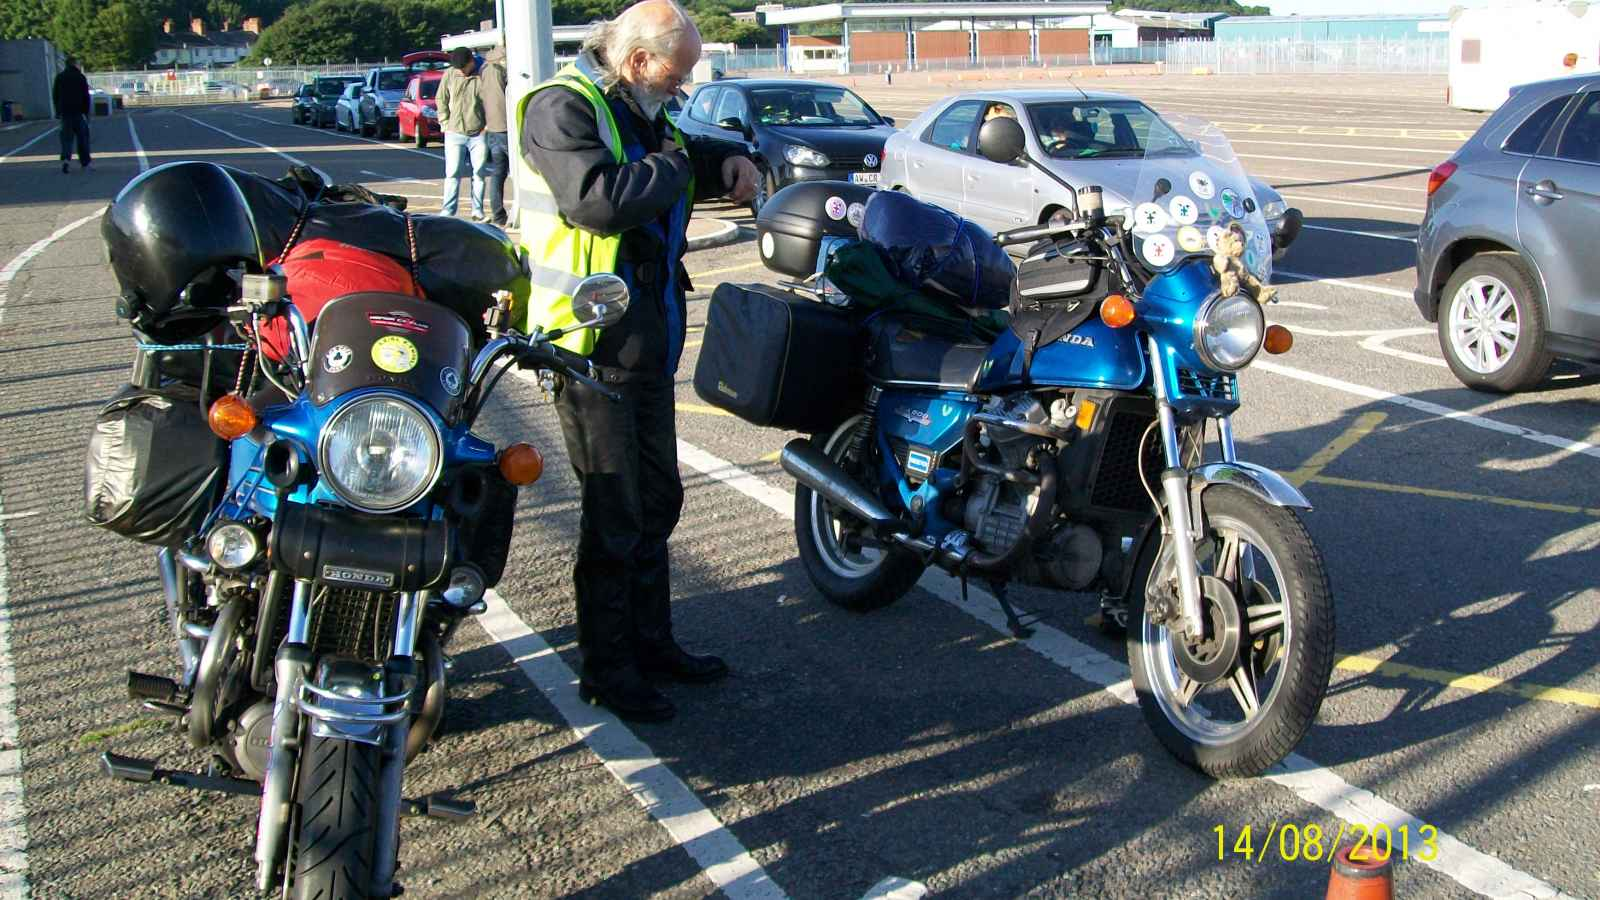 Waiting for the ferry at Harwich with Travelling Man.